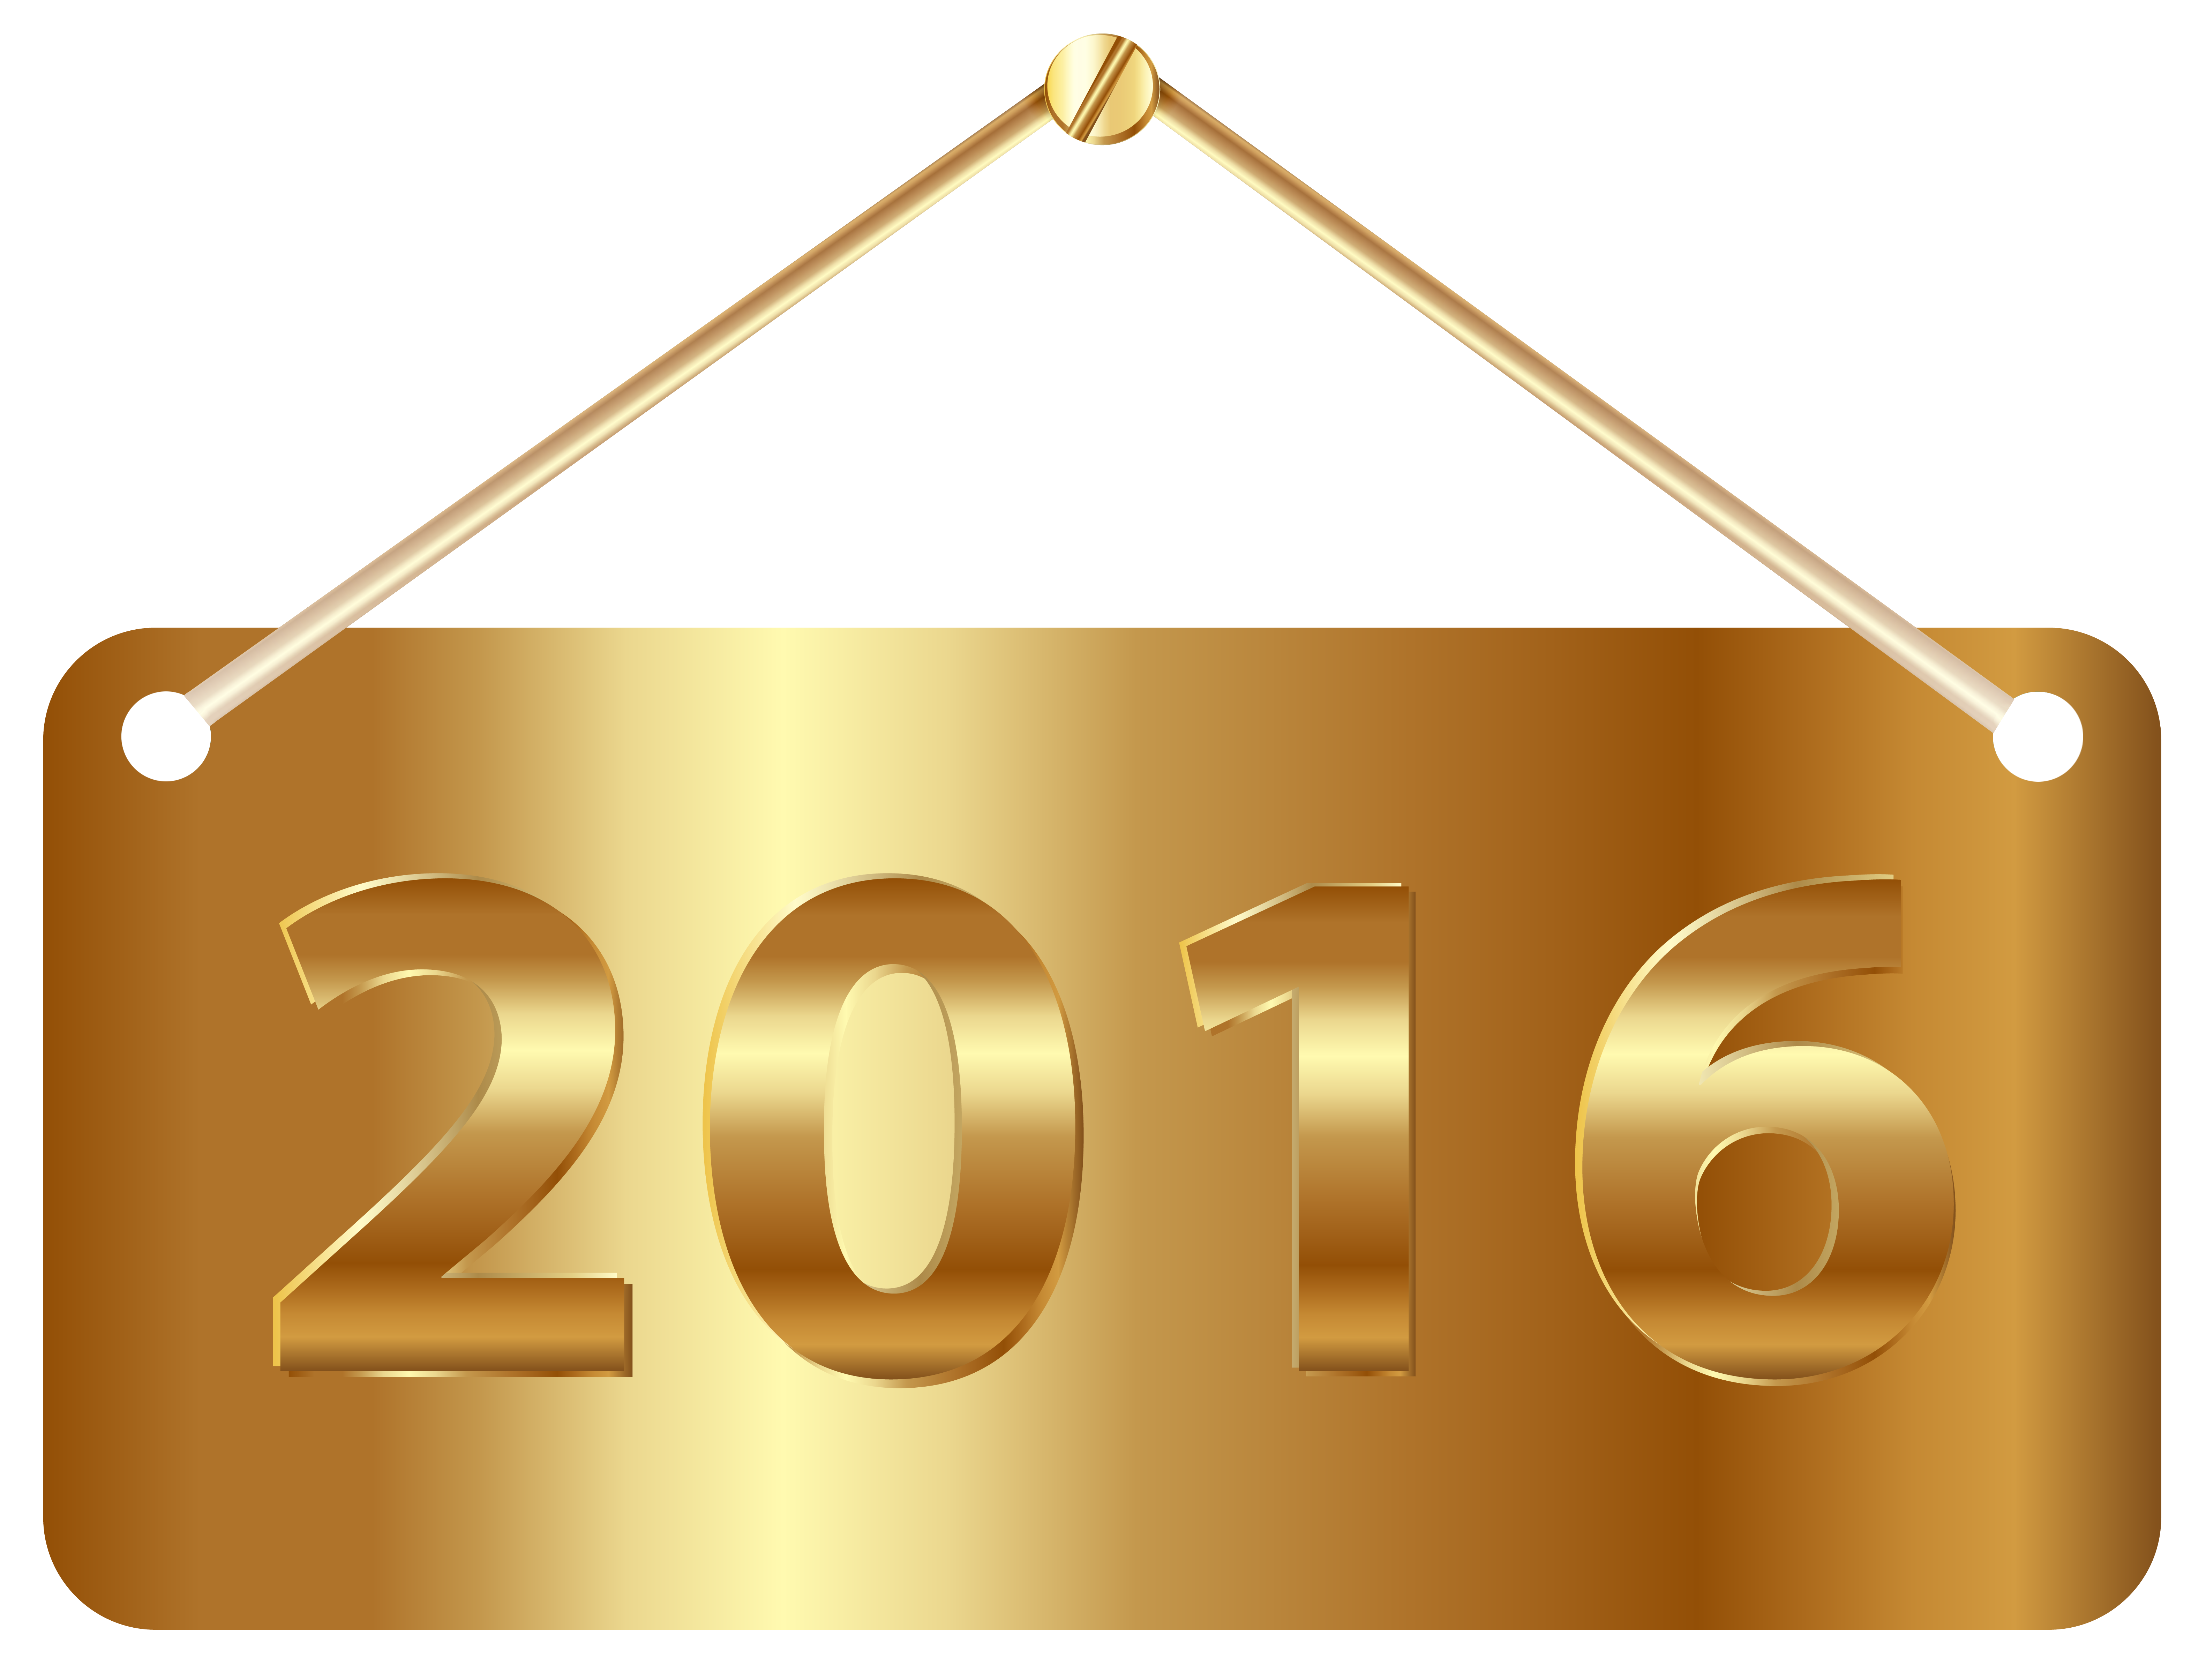 Gold Label 2016 PNG Clipart Image.